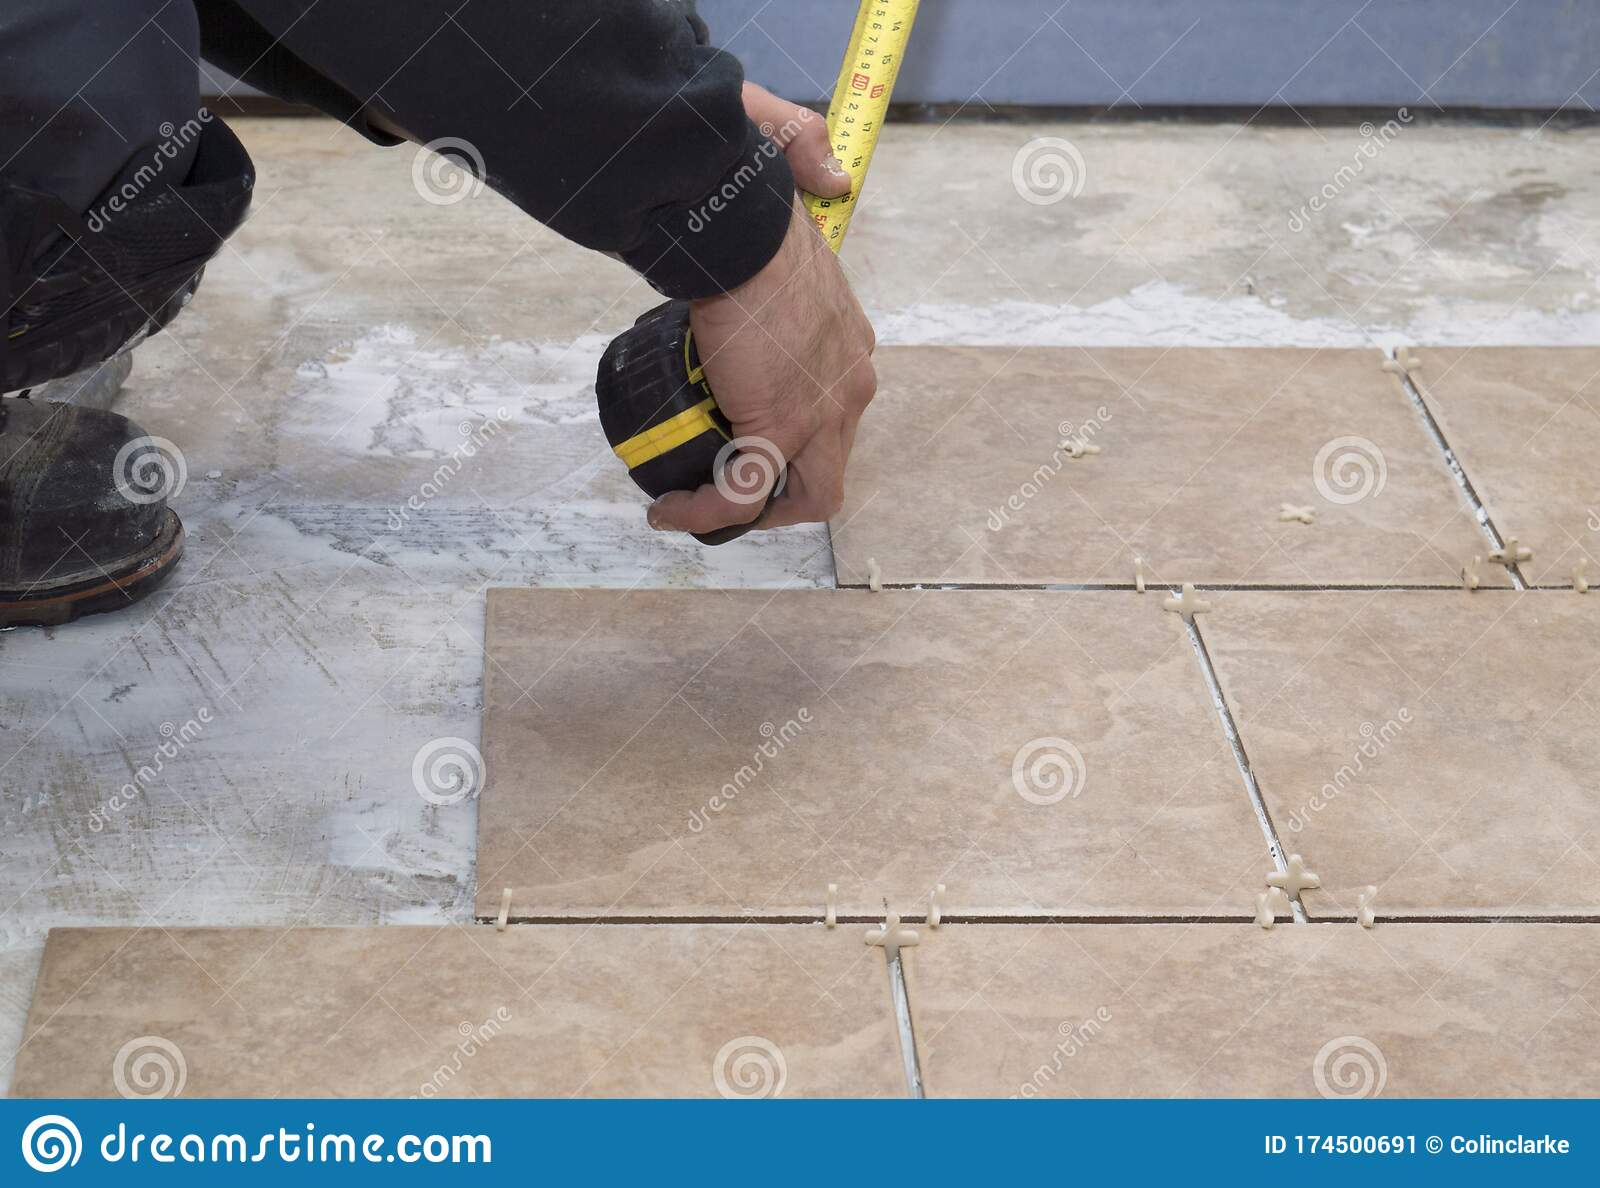 https www dreamstime com contractor handyman installs ceramic tiles measures distance wall to get accurate fit tiling basement image174500691